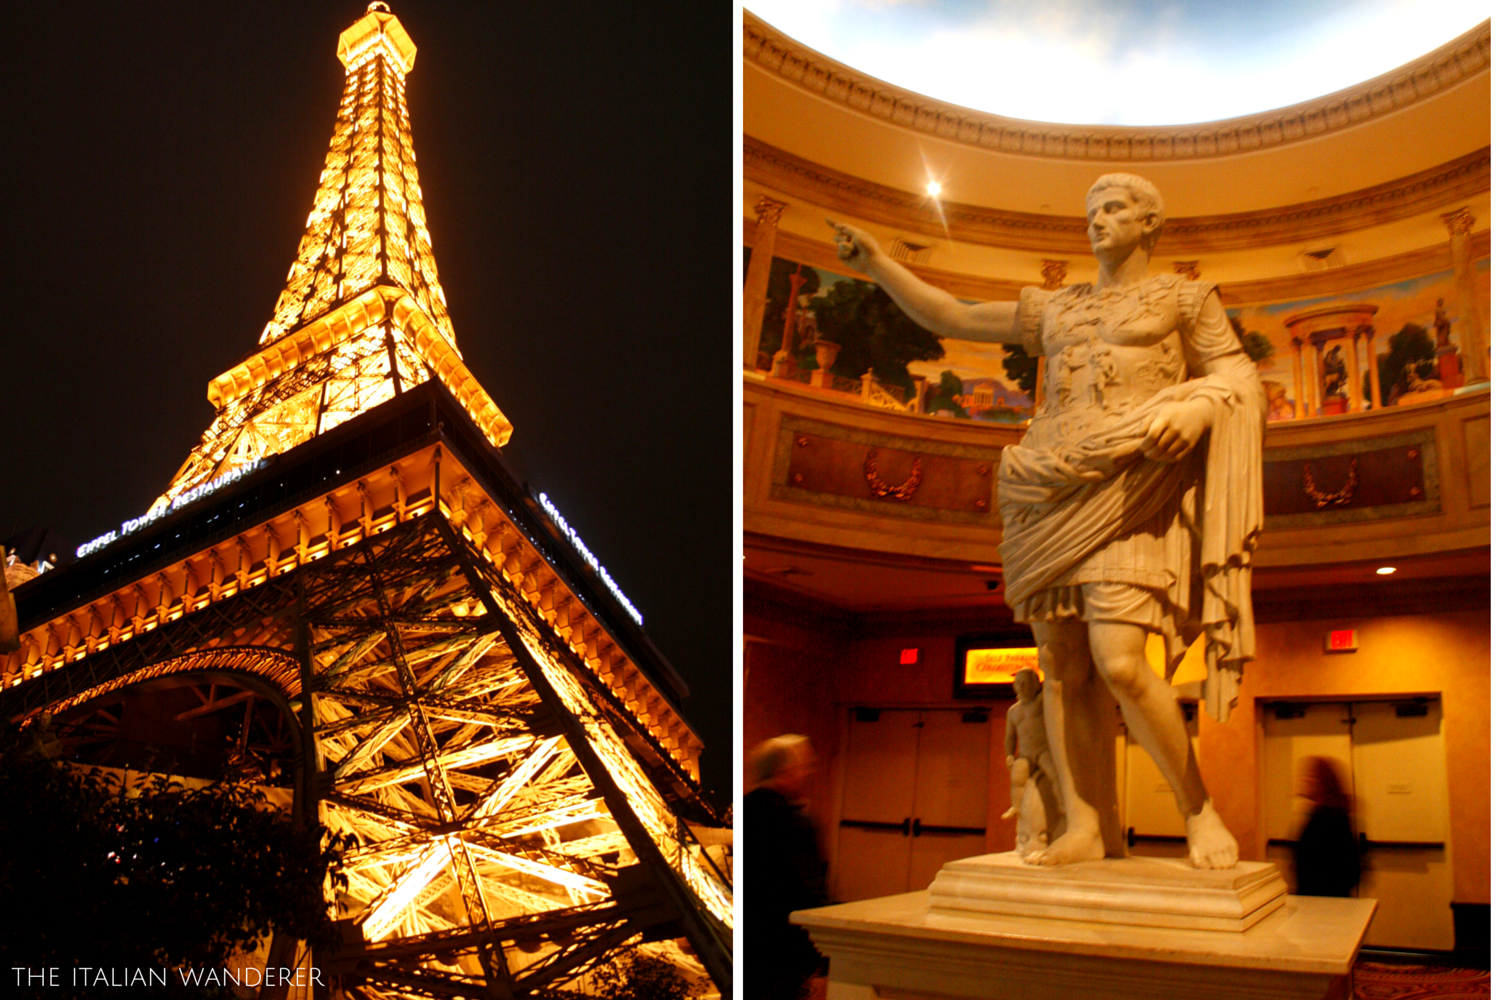 Details of Las Vegas' casinos: Paris and Ceasar's Palace